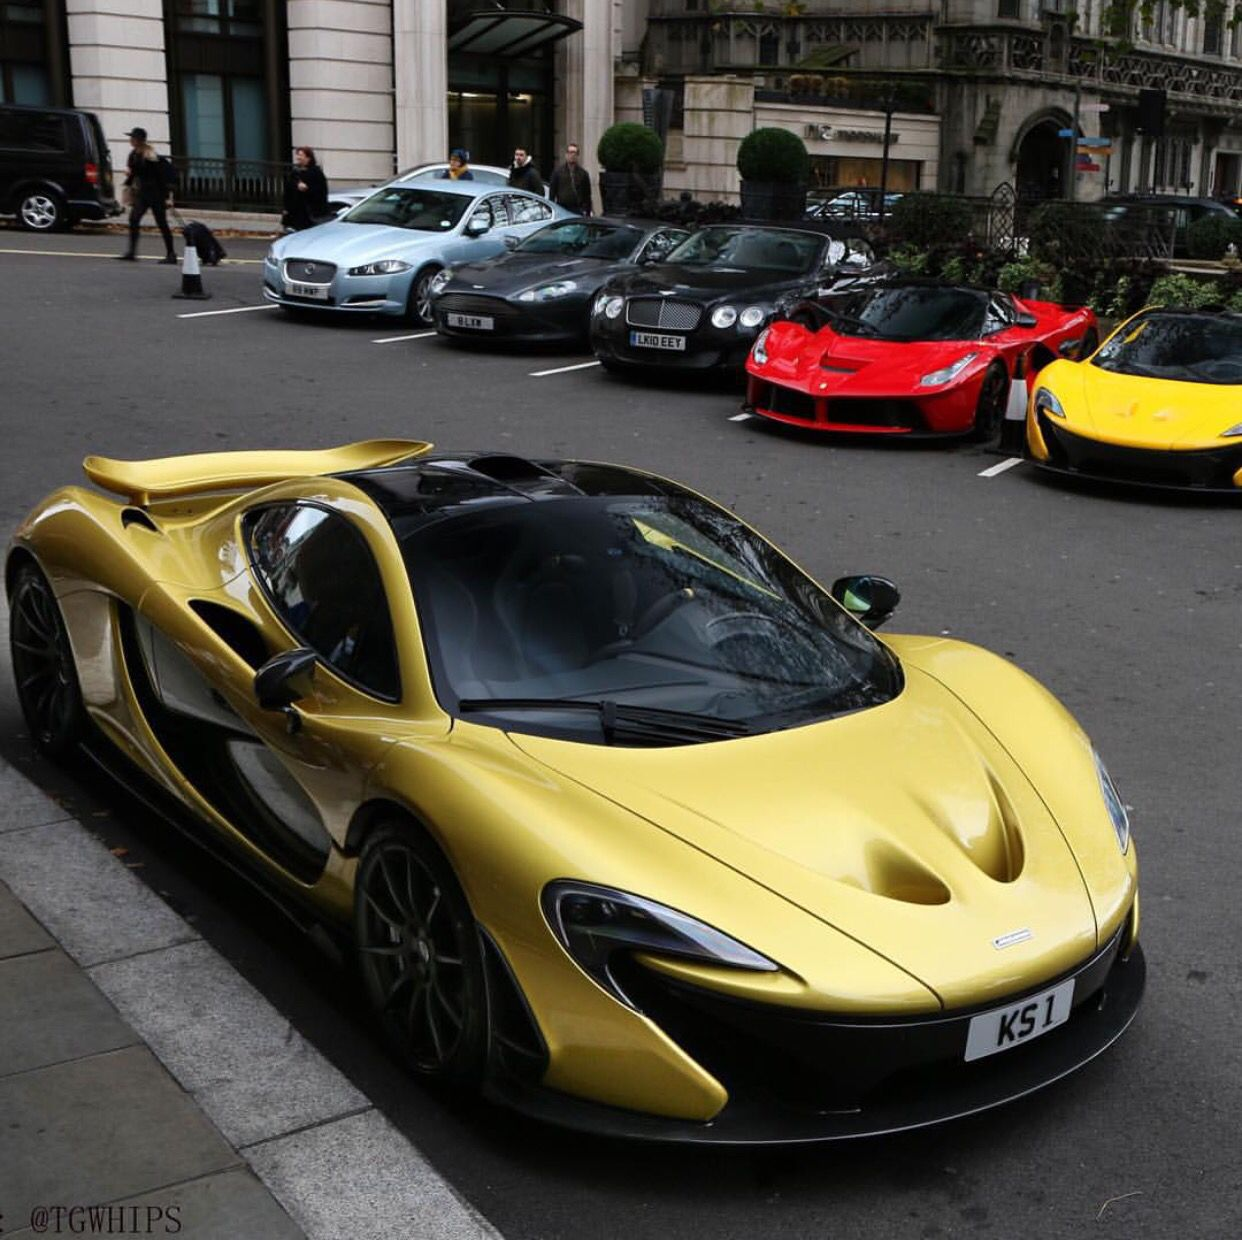 Incroyable McLaren P1 Painted In Austin Yellow W/ Exposed Carbon Fiber, A Ferrari  LaFerrari Painted In Rosso Corsa, And Another McLaren P1 Painted In Volcano  Yellow W/ ...